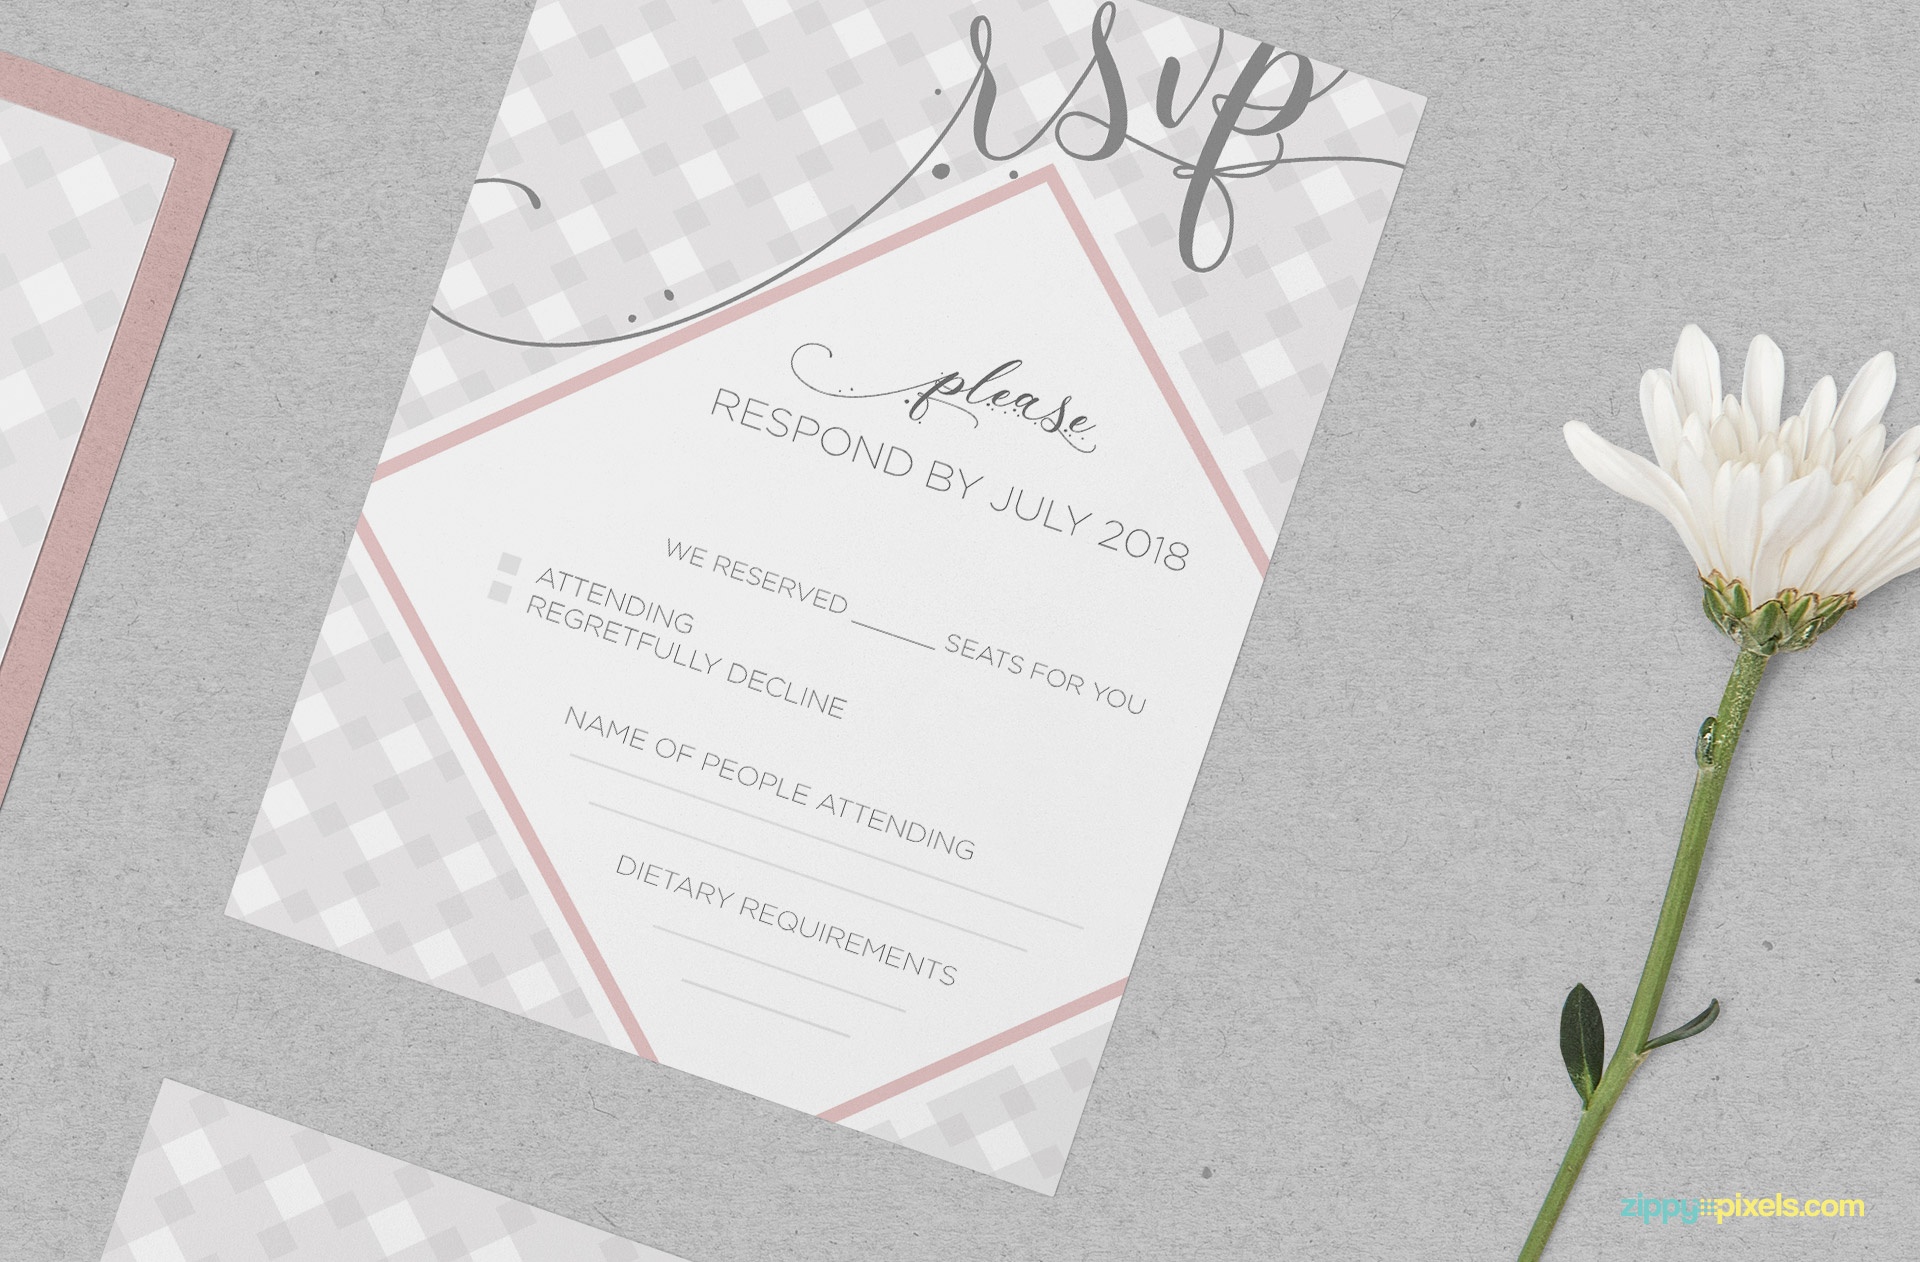 Free invitation card mockup.